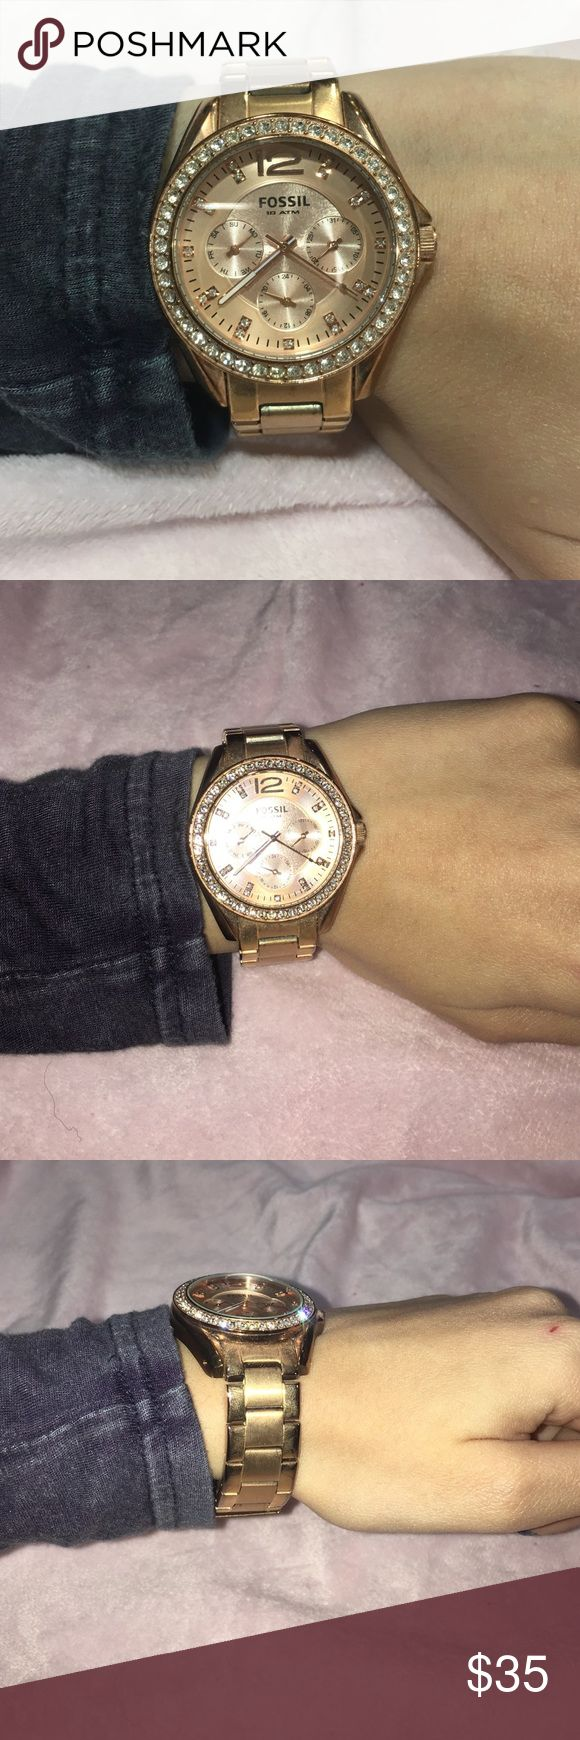 Women's Rose Gold Fossil Chronograph Watch Women's rose gold fossil chronograph watch with a crystallized bezel. Markers are also adorned with crystals. Perfect piece if you are looking for a rose gold watch. Fossil Accessories Watches